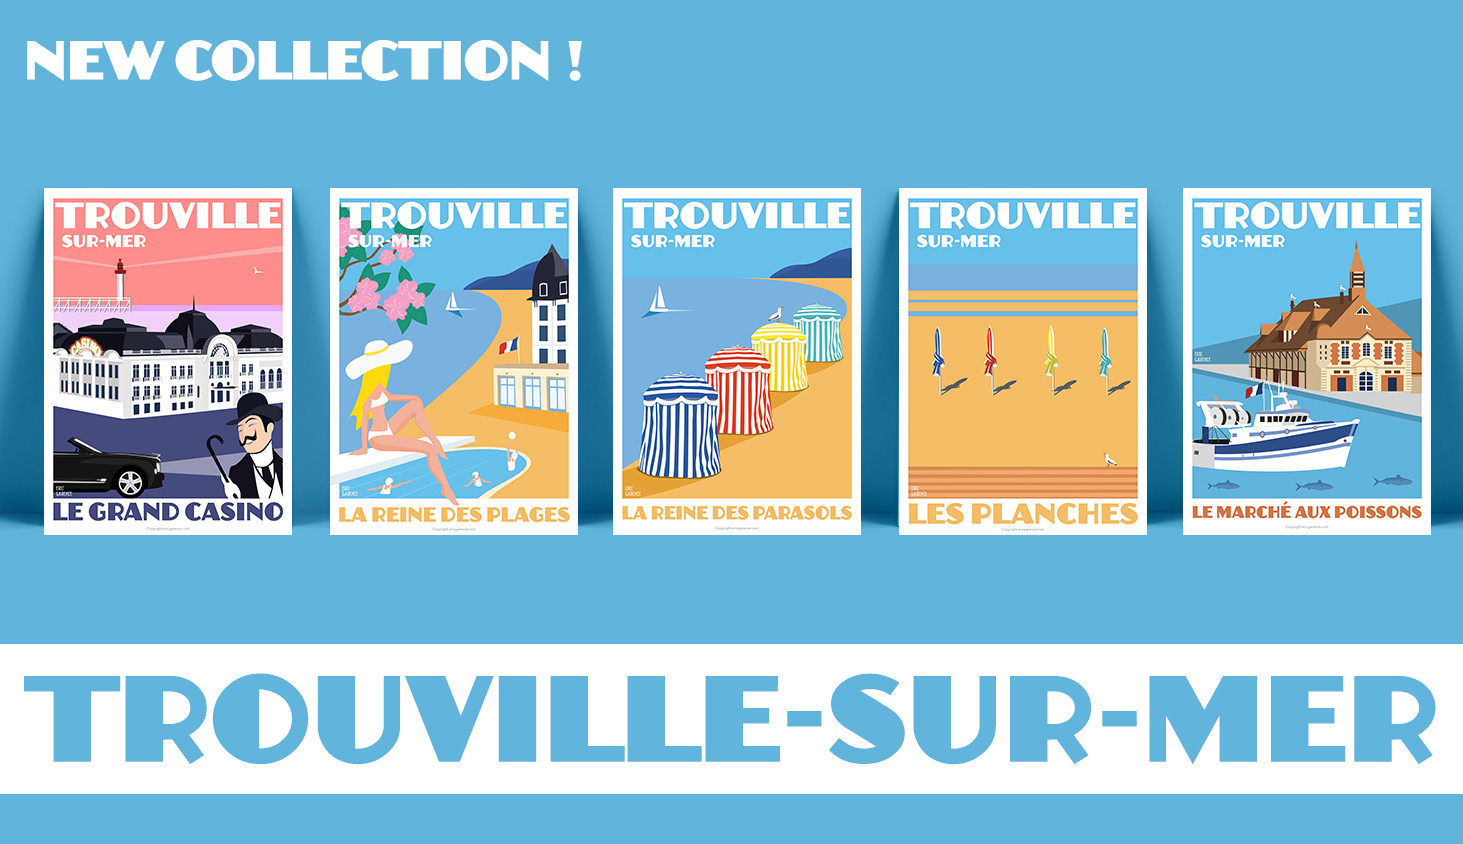 Affiches Trouville-sur-mer - Collection Eric Garence